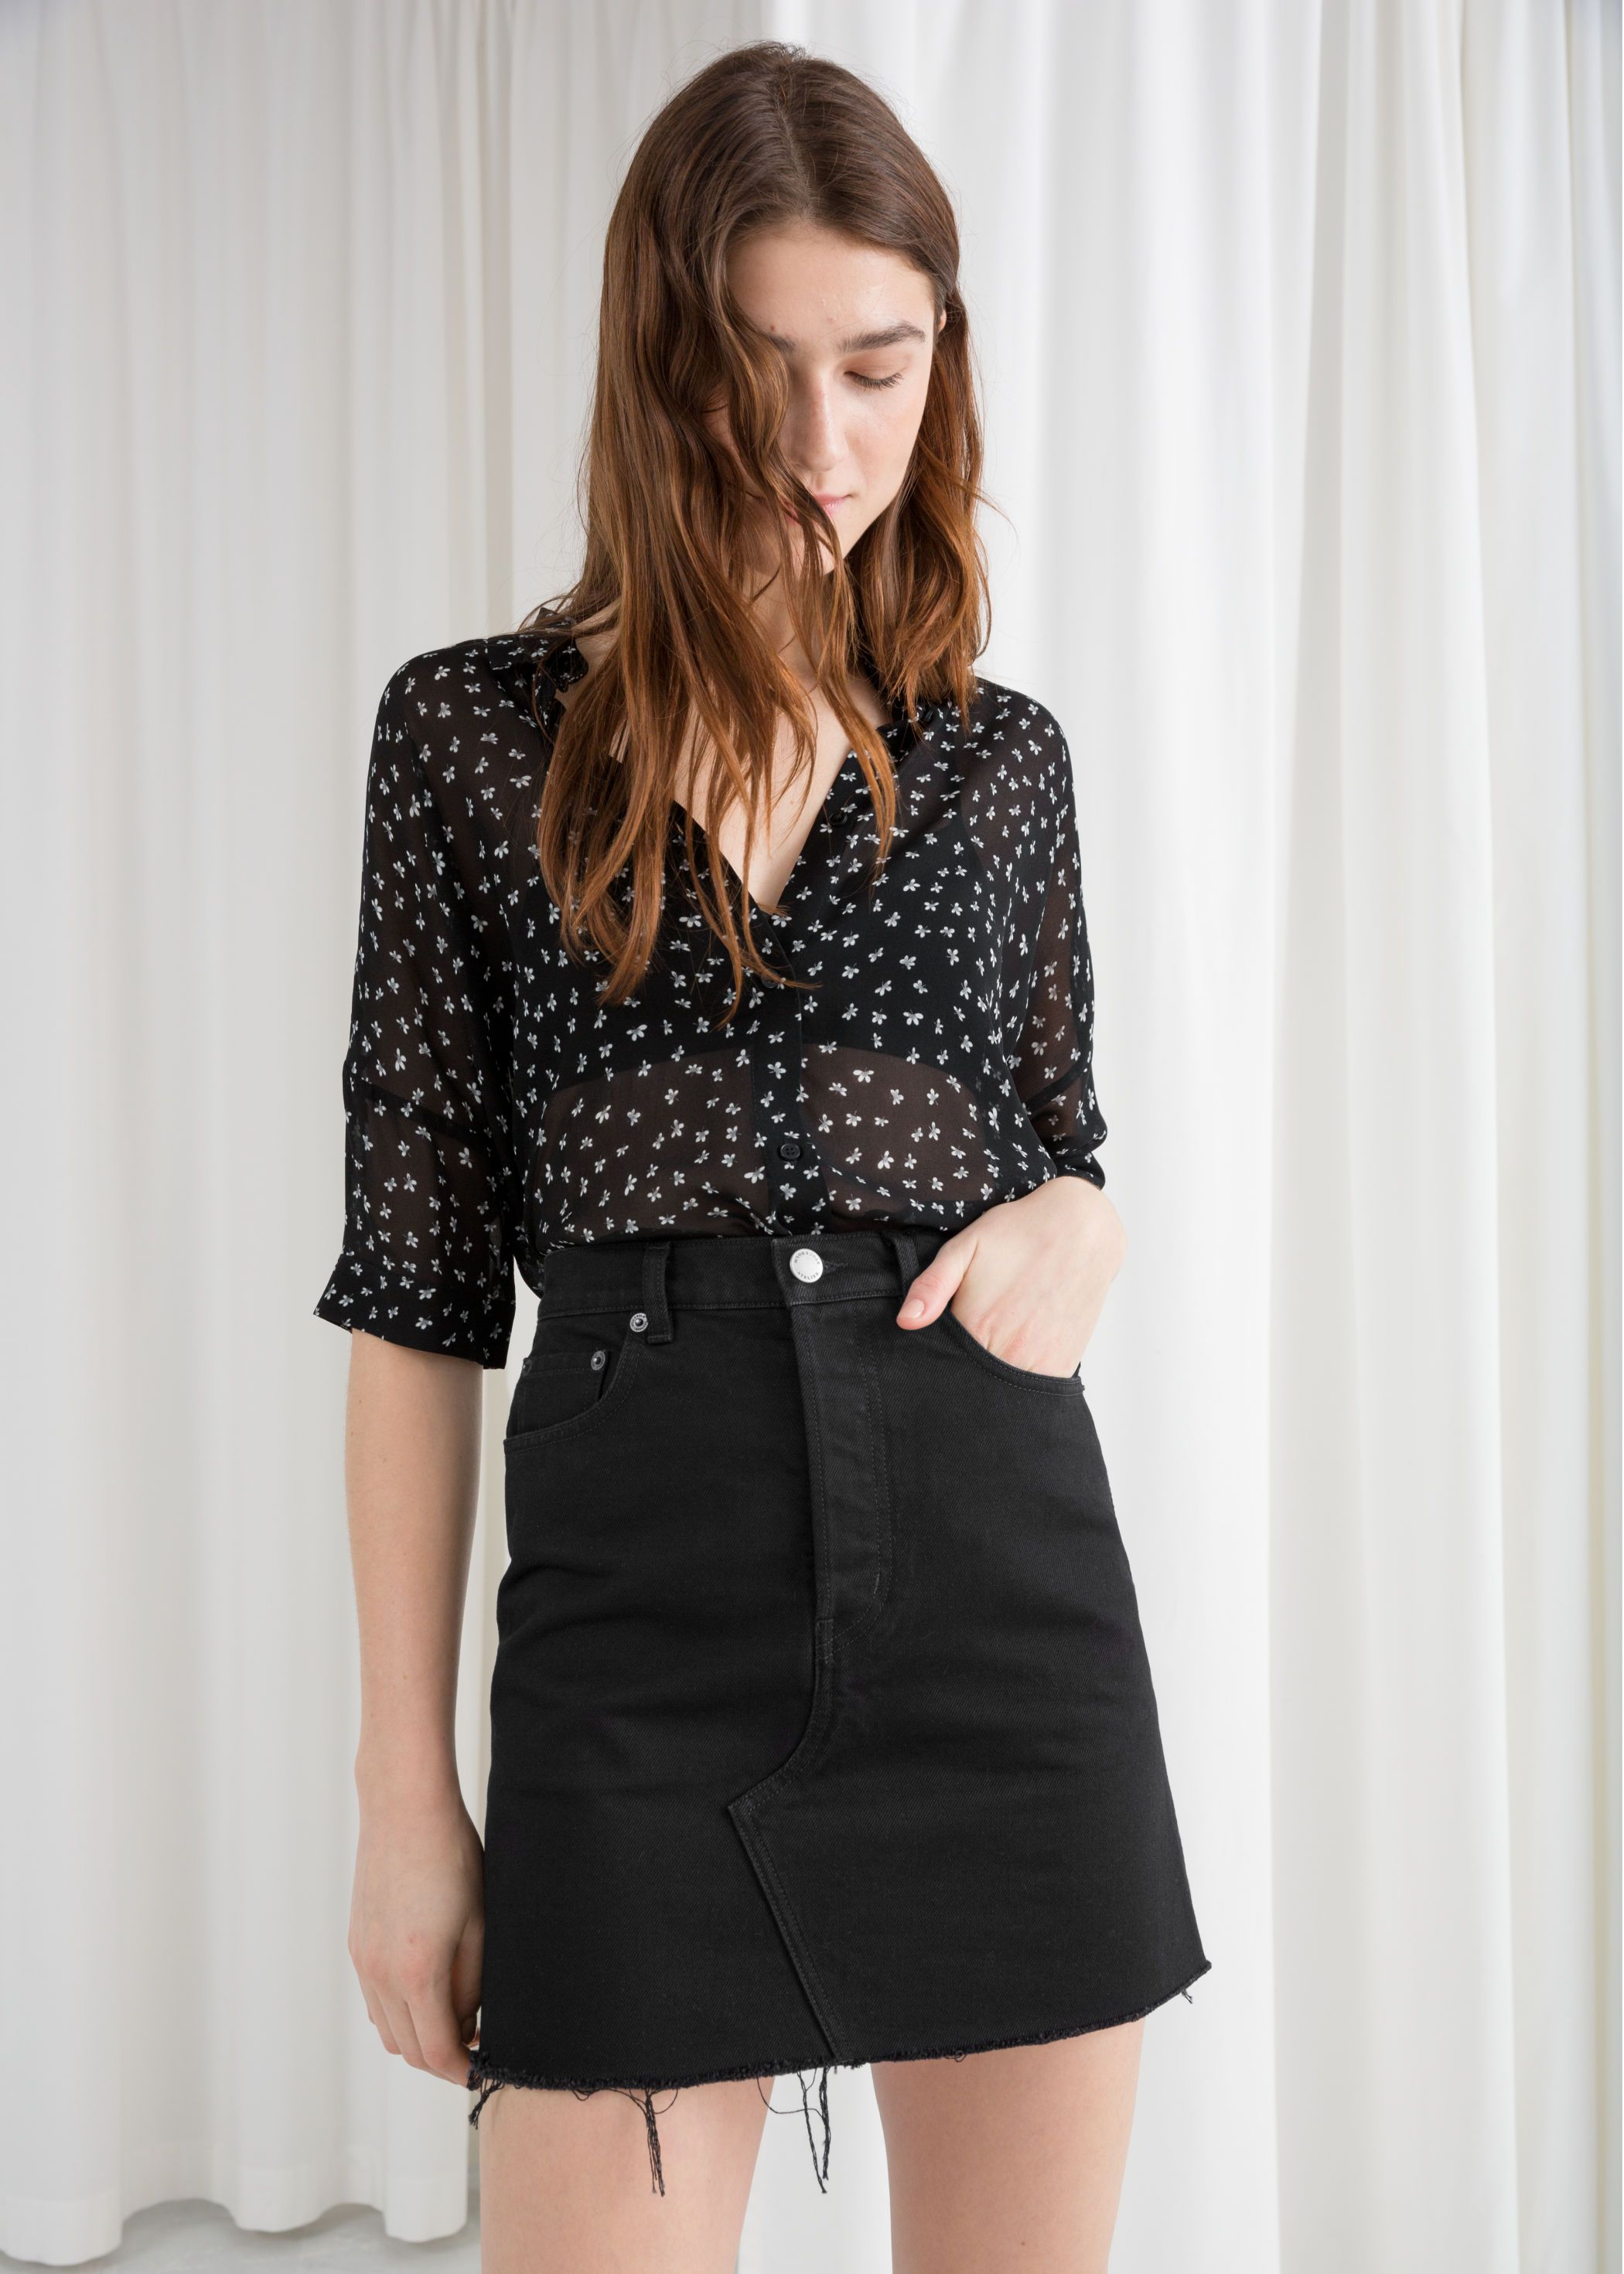 Buy How to oversized wear sheer blouse picture trends